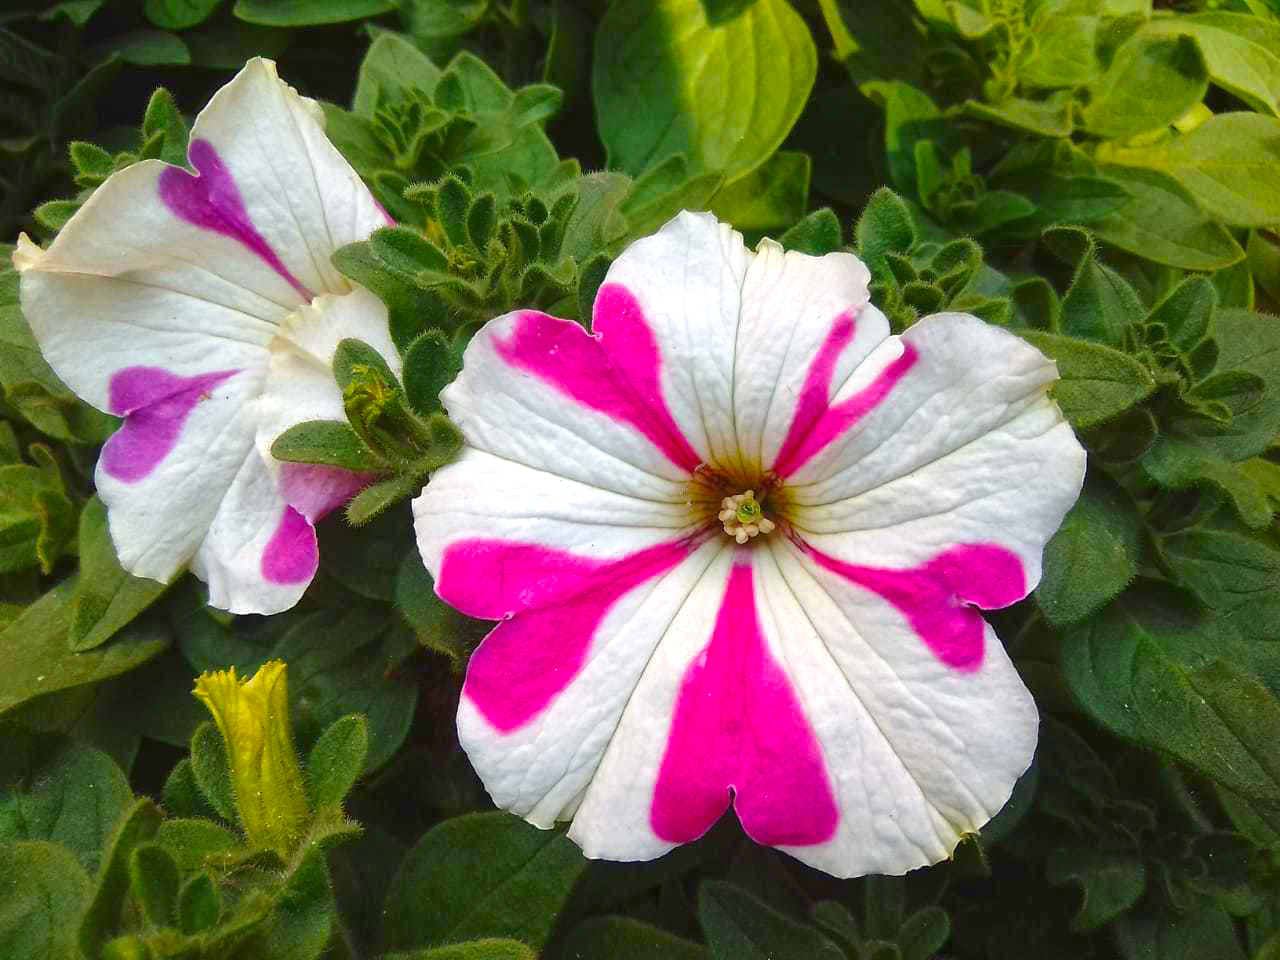 This flower name is Petunias.